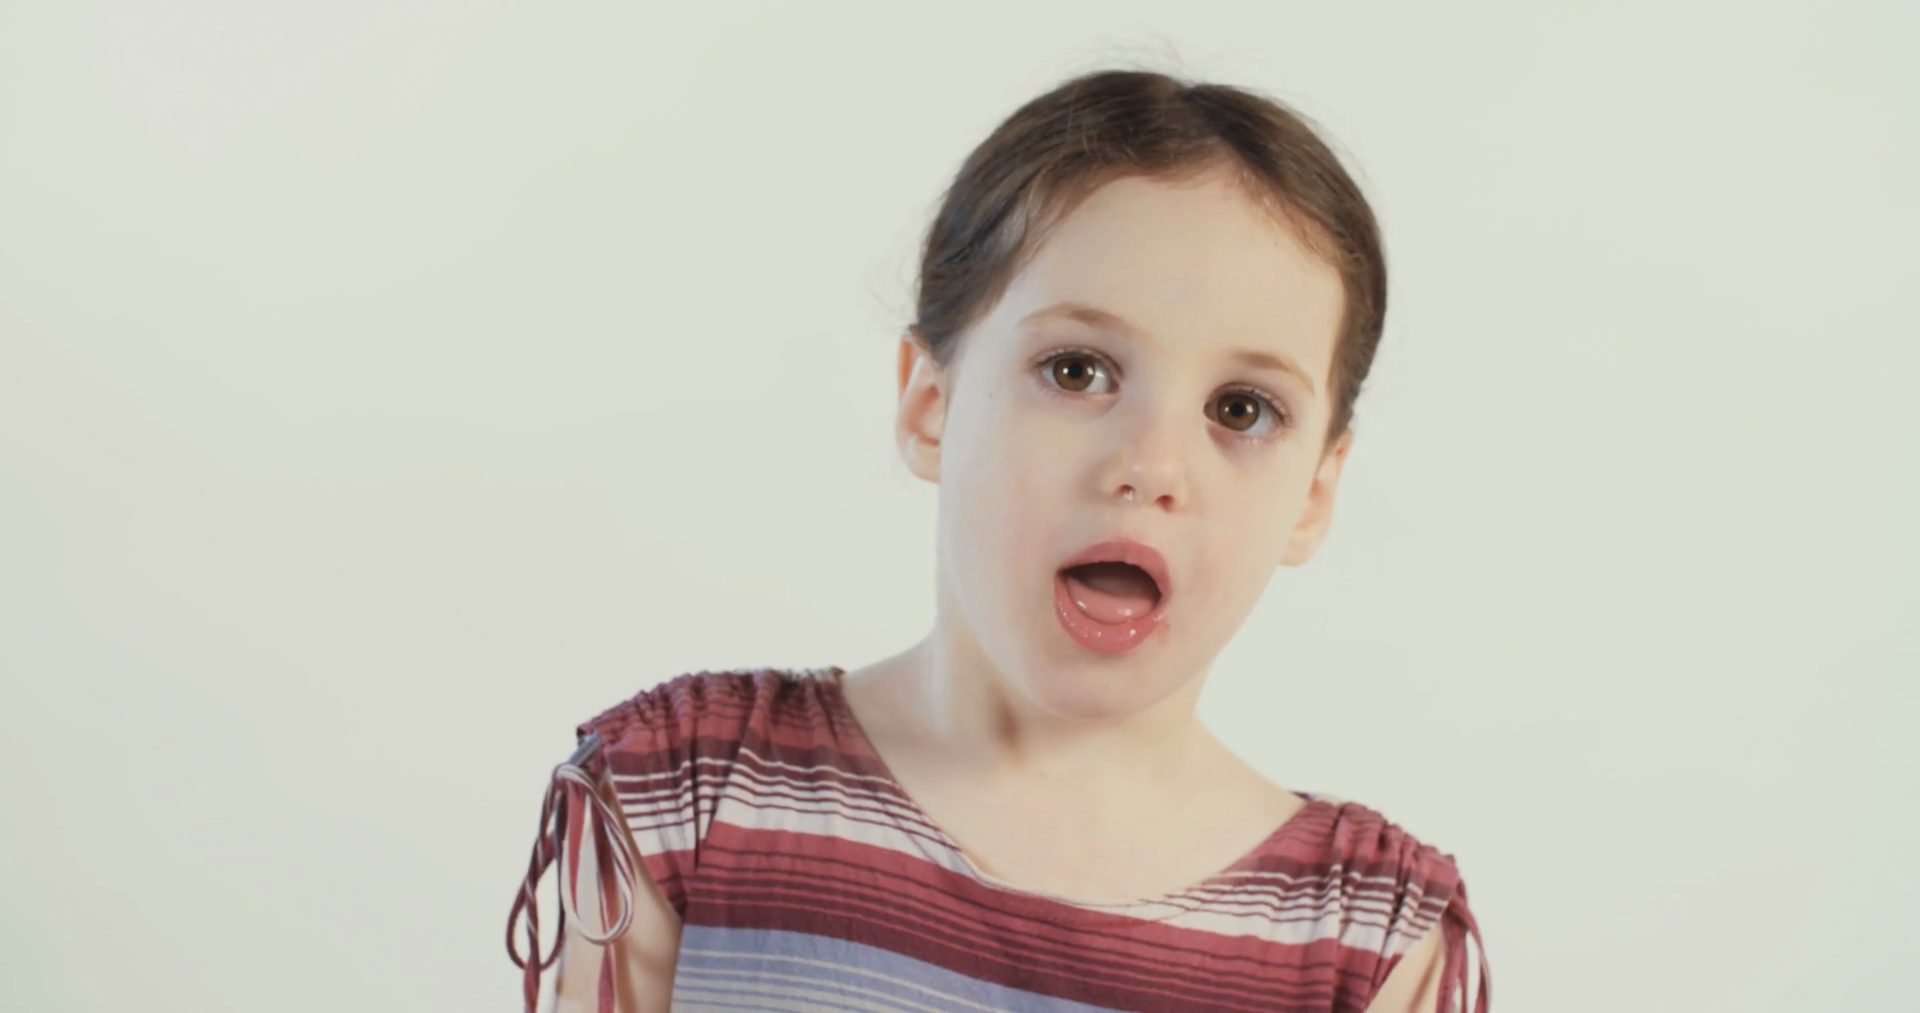 Little girl wearing a dress pulling out tongue Stock Video